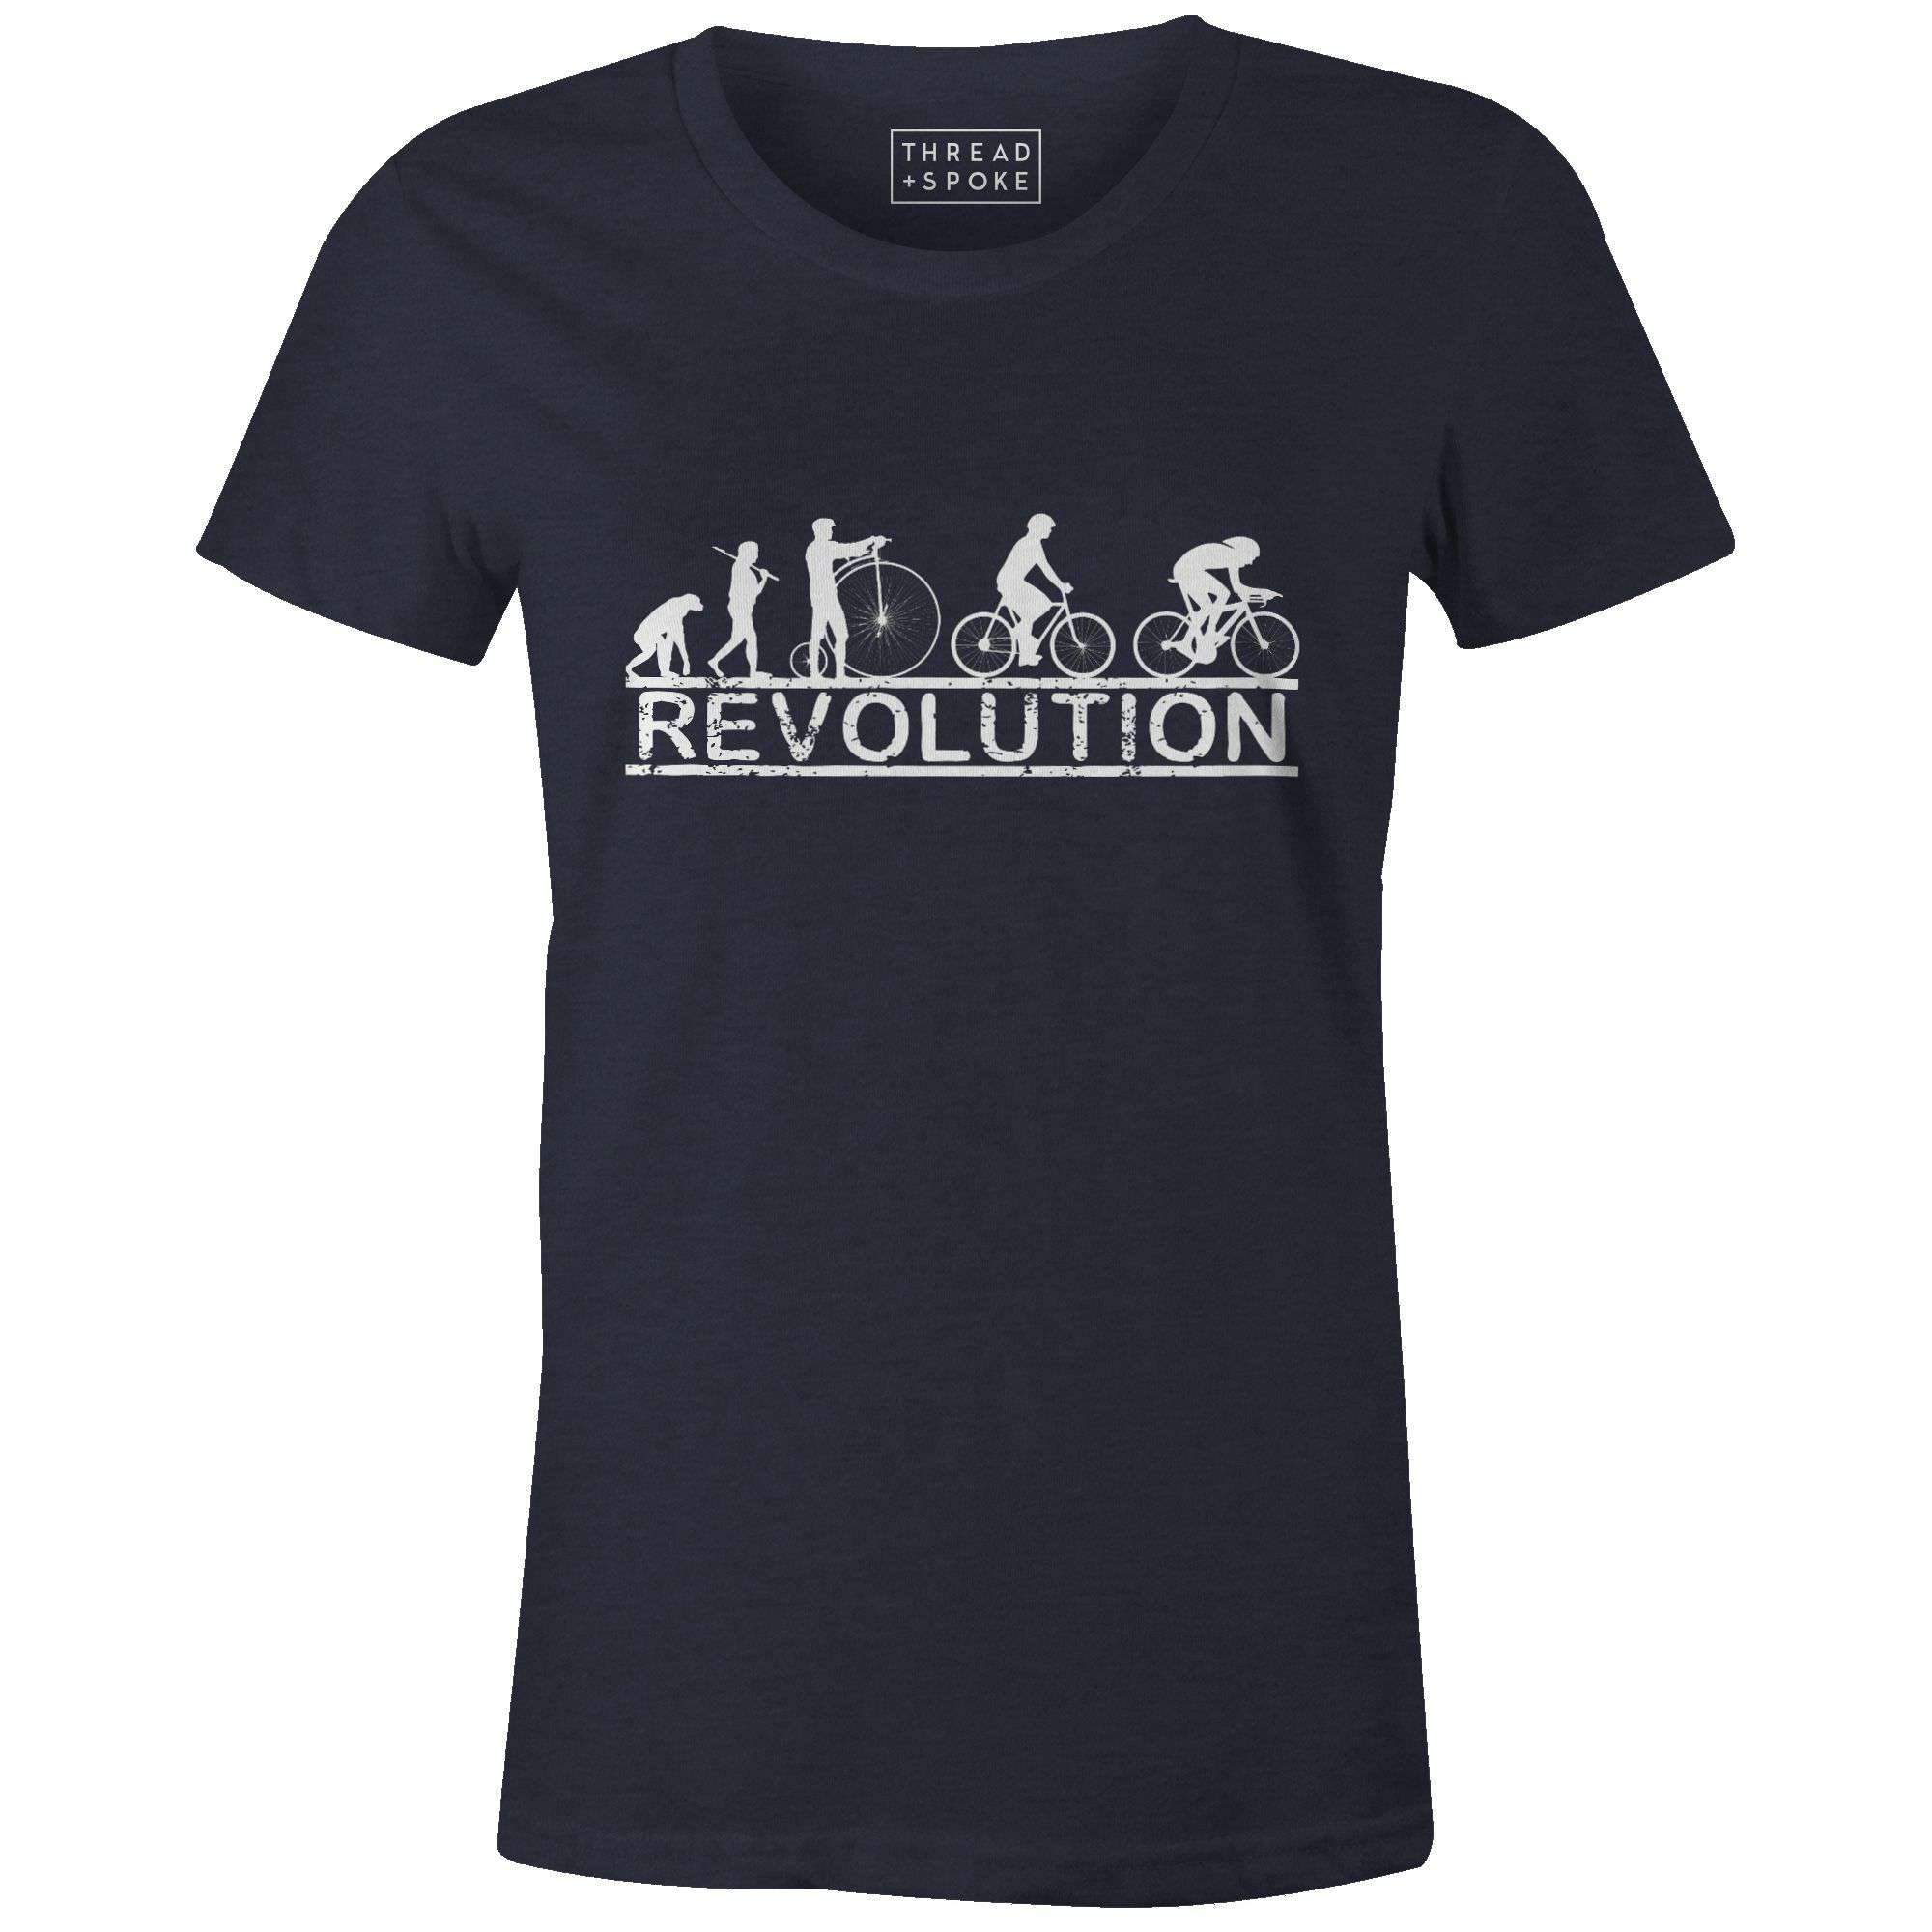 Cycling Revolution Women'sMile24 - THREAD+SPOKE | MTB APPAREL | ROAD BIKING T-SHIRTS | BICYCLE T SHIRTS |